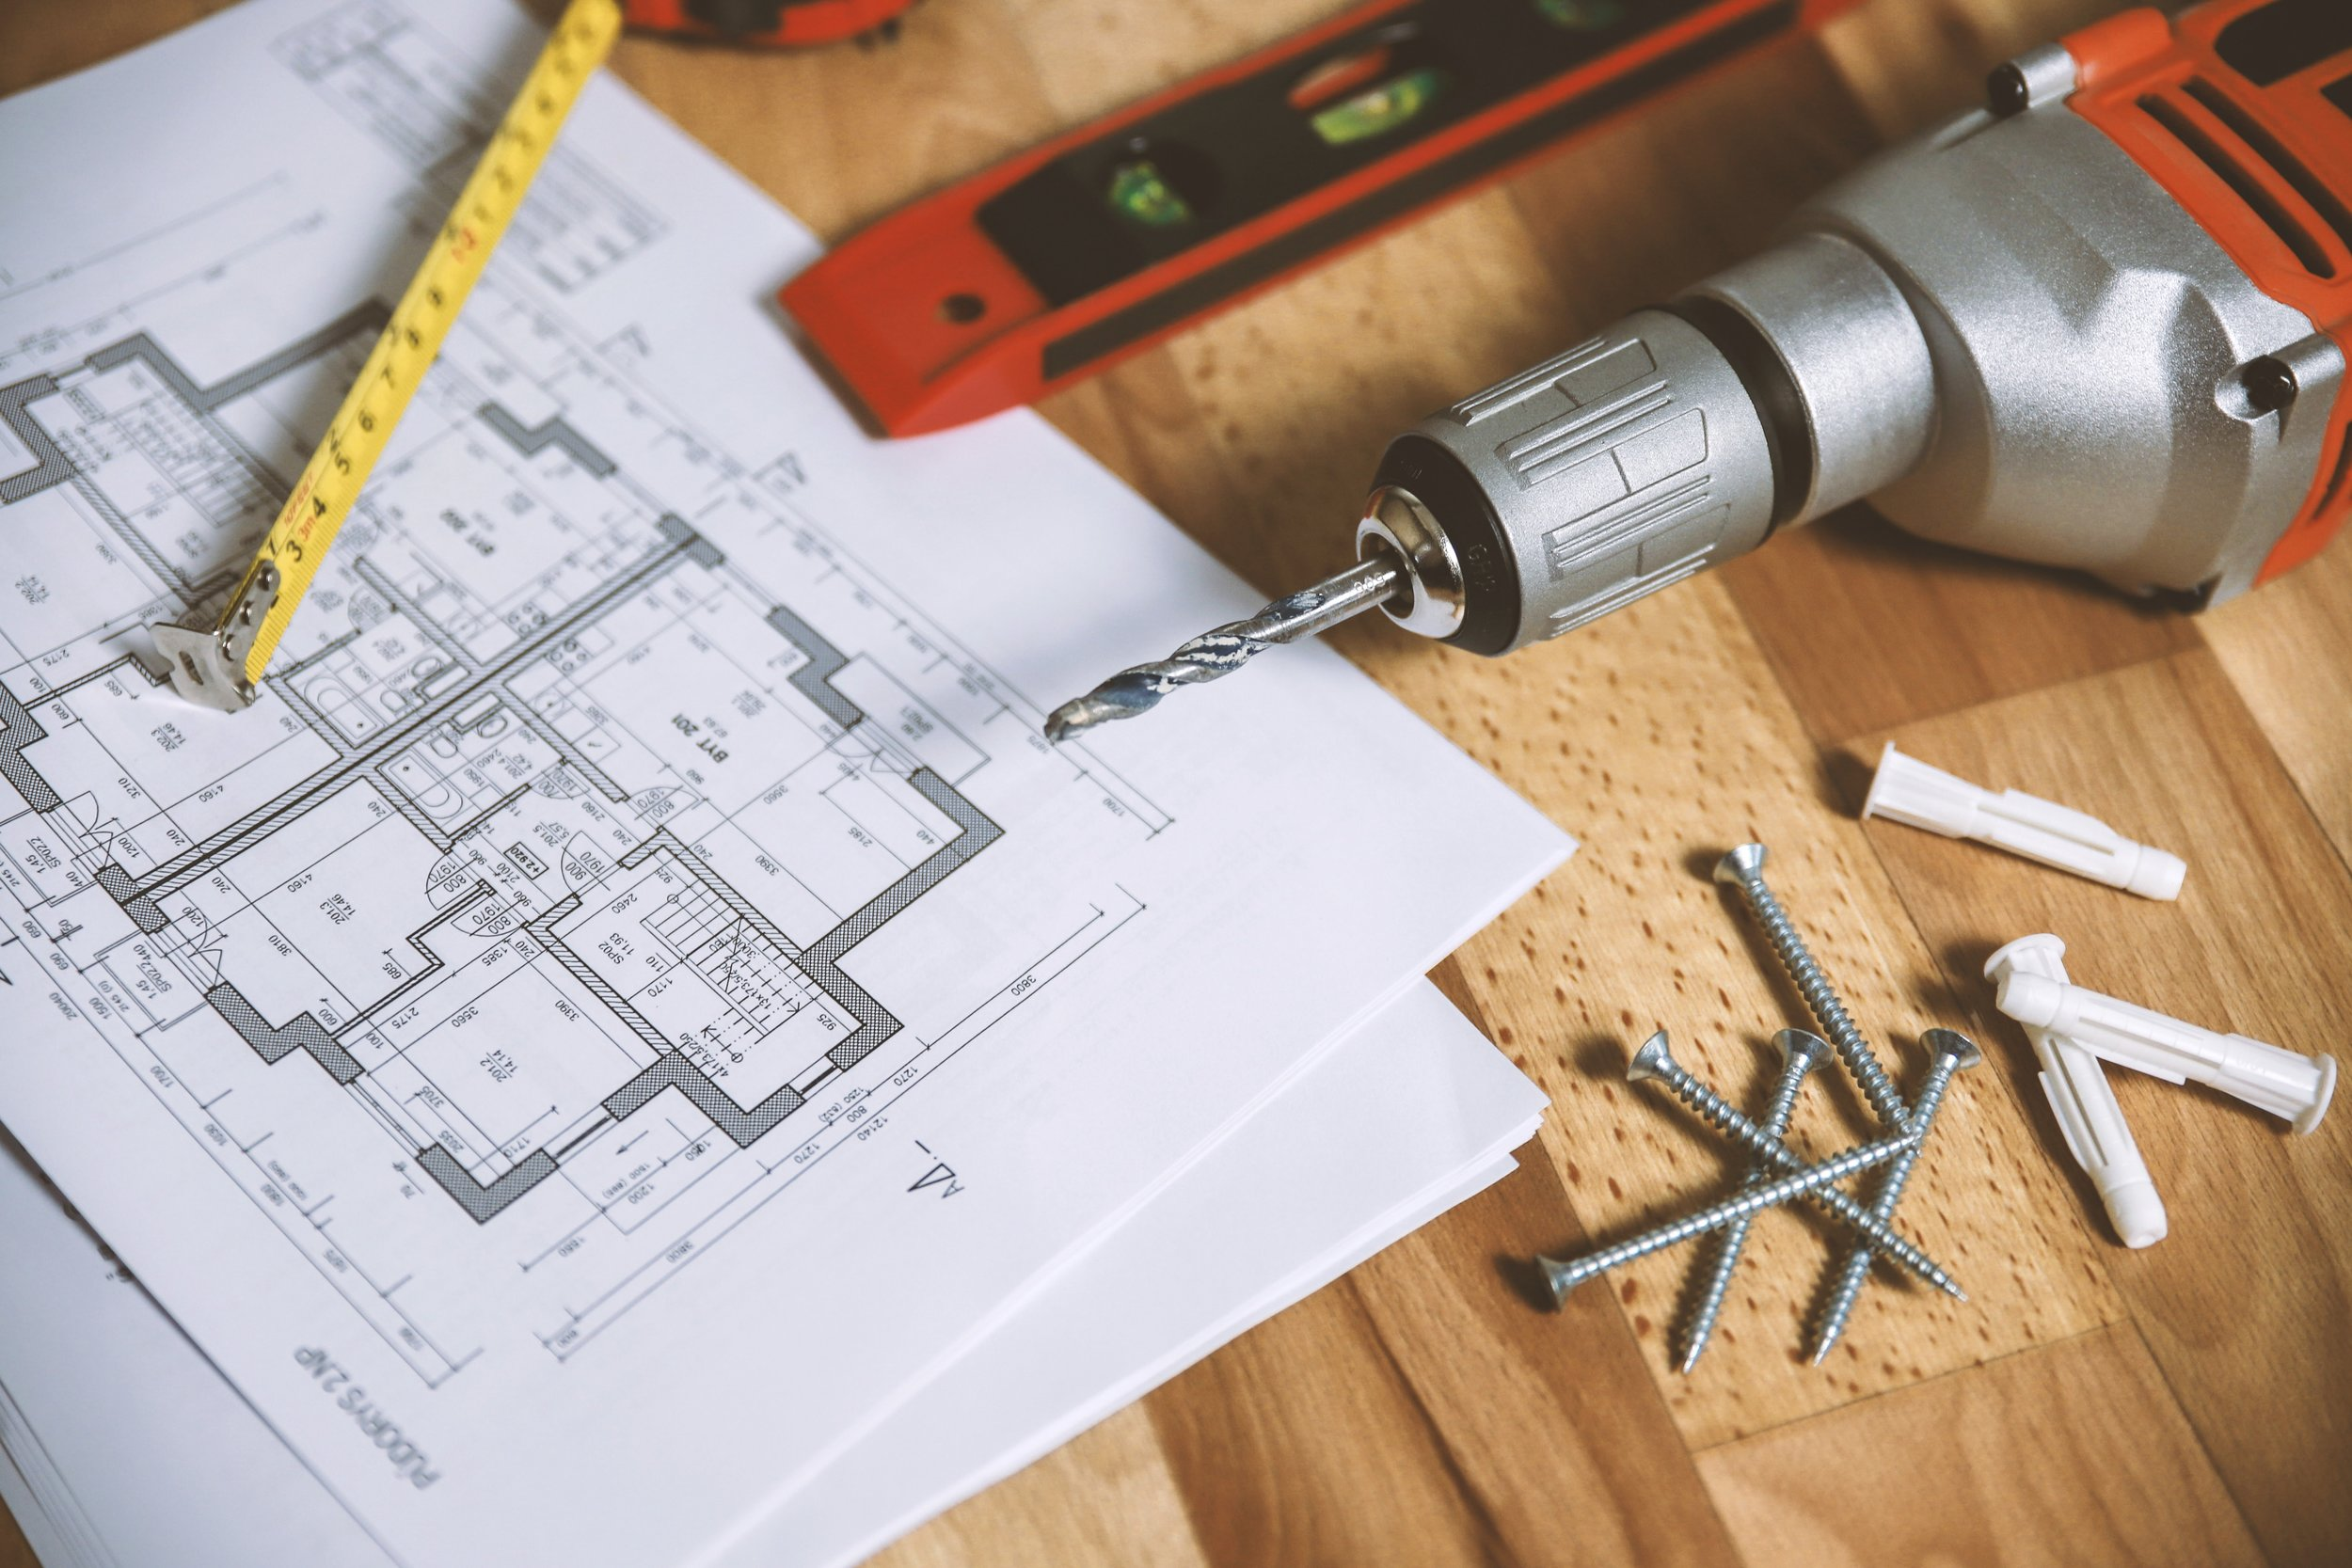 Measure - We measure kitchens and bathrooms at your request for accuracy. A fee may be involved due to distance.